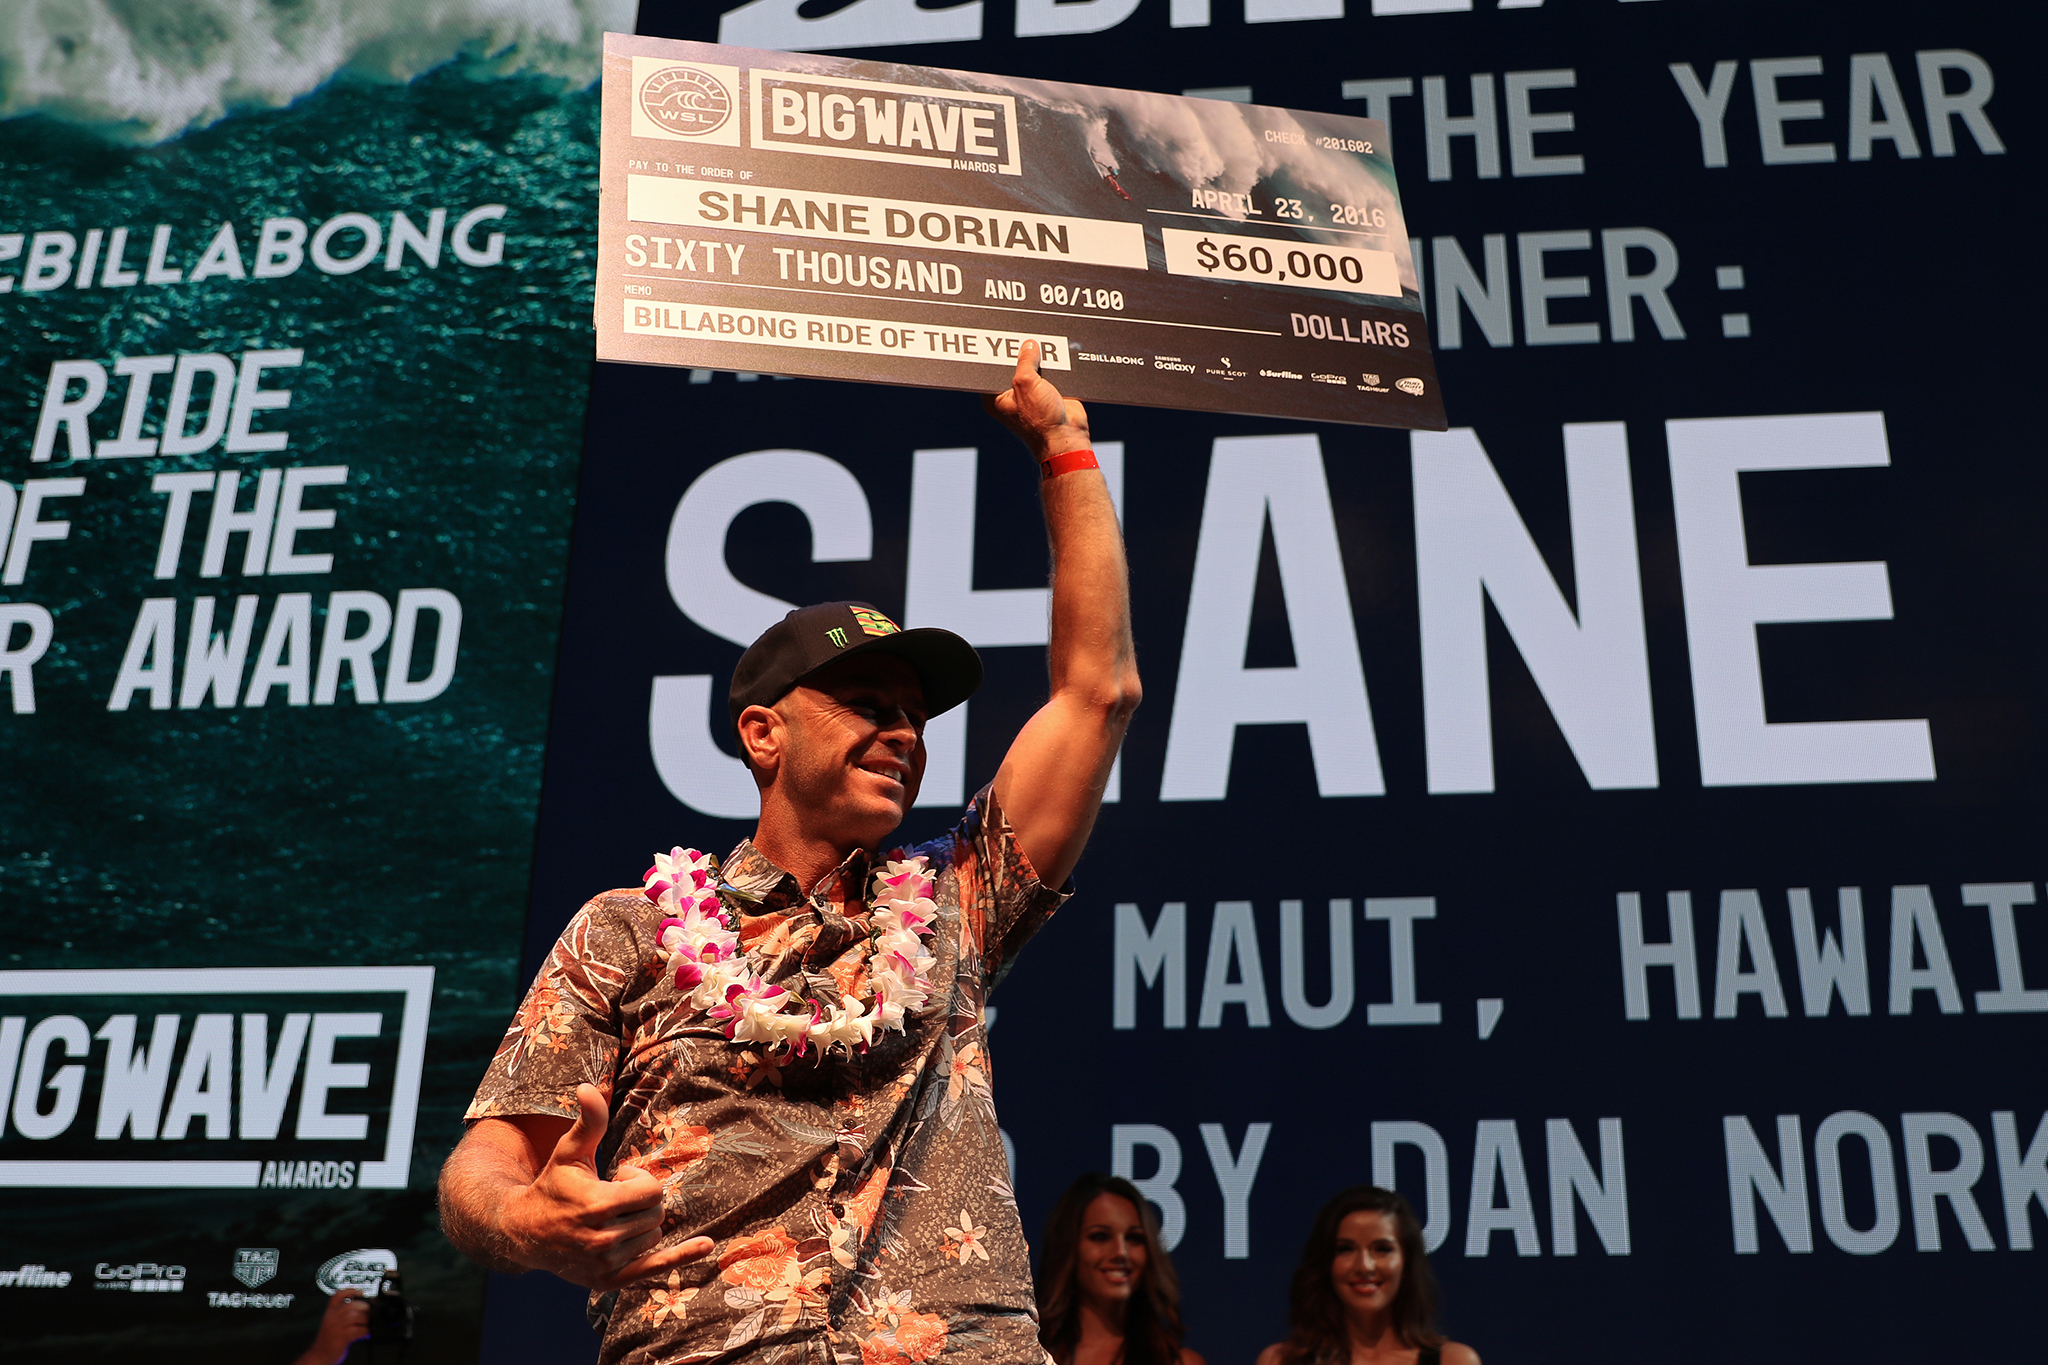 Shane Dorian secured the Billabong Ride of the Year Award for an incredible ride at Jaws earlier this year. He also won the Surfline Men's Overall Performance of the Year Award at the XXL Awards in Anaheim, California. Photo: WSL